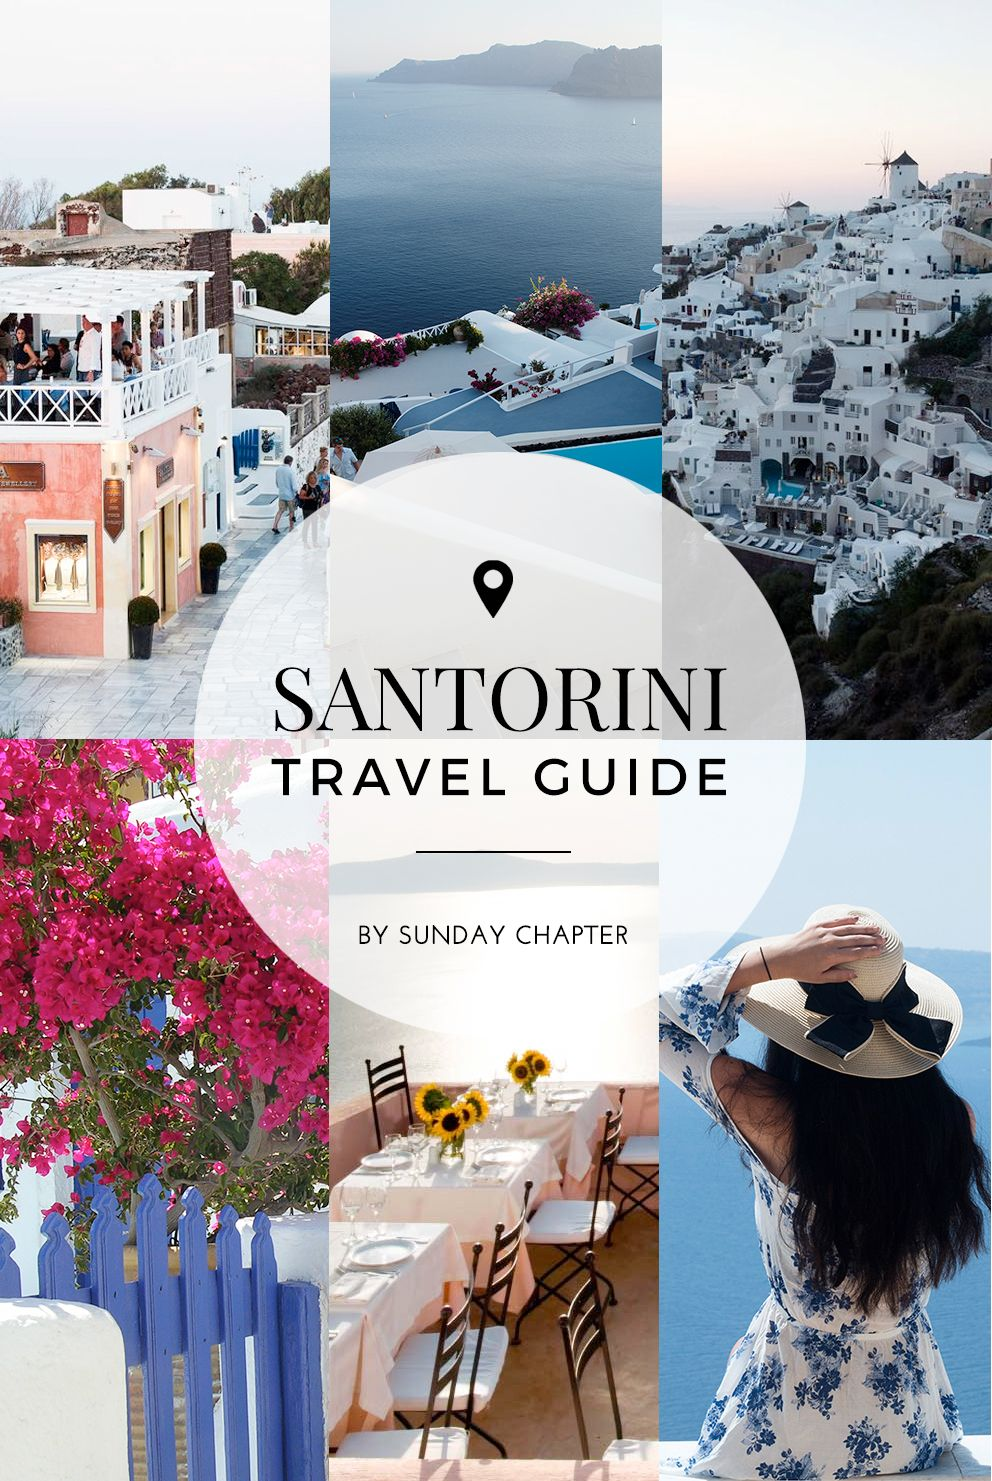 Complete travel guide to #SANTORINI - the best towns, attractions, hidden gems, bars, beaches, restaurants & nightlife around the island!